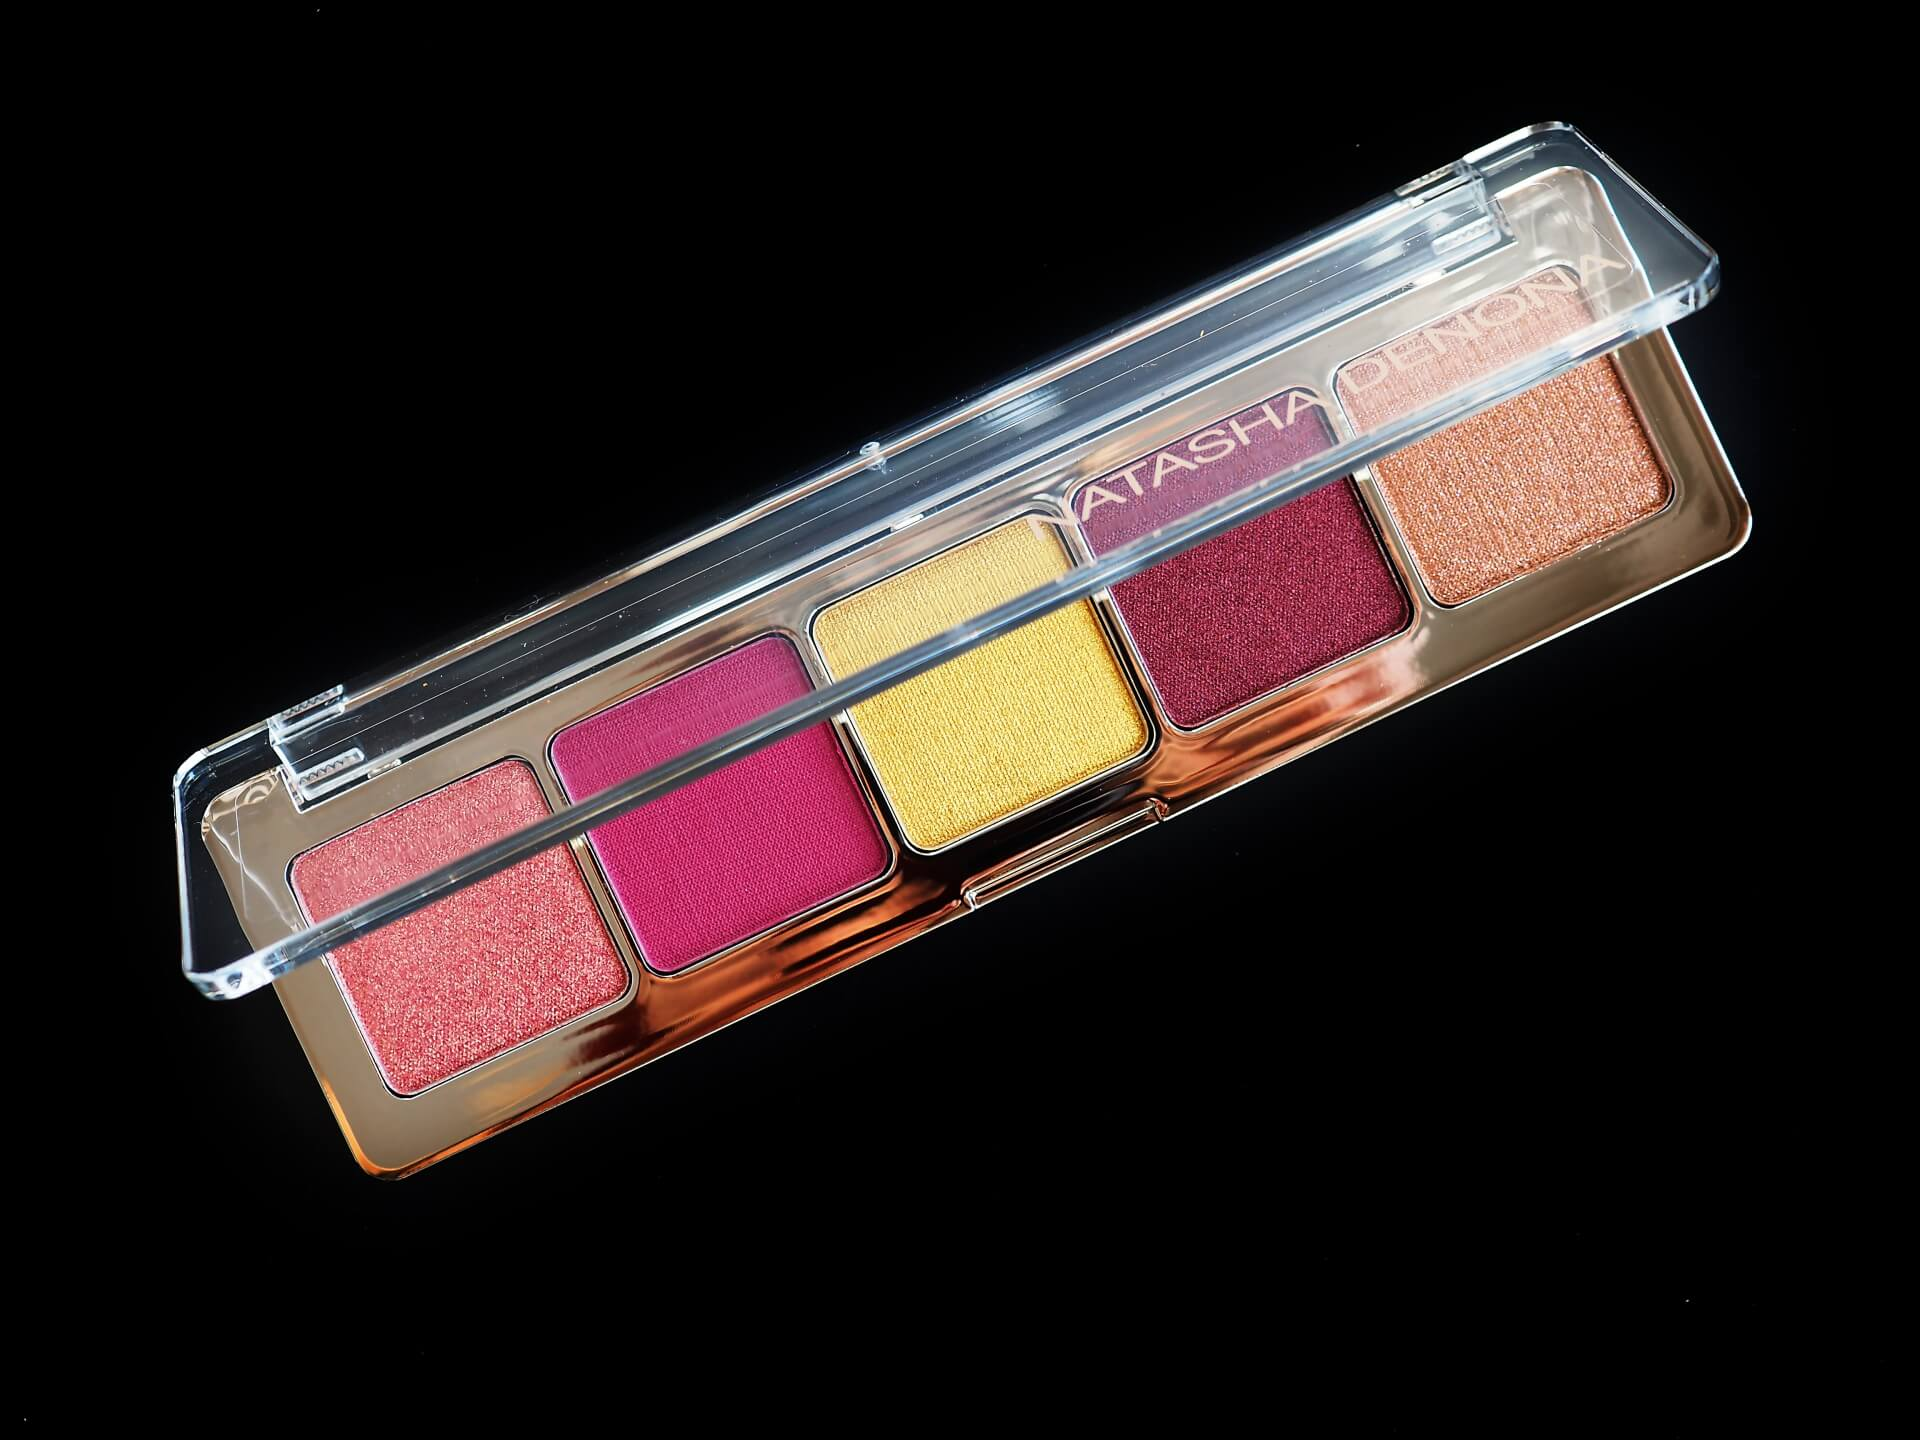 Natasha Deanna Holiday 01 Joya Eyeshadow Palette